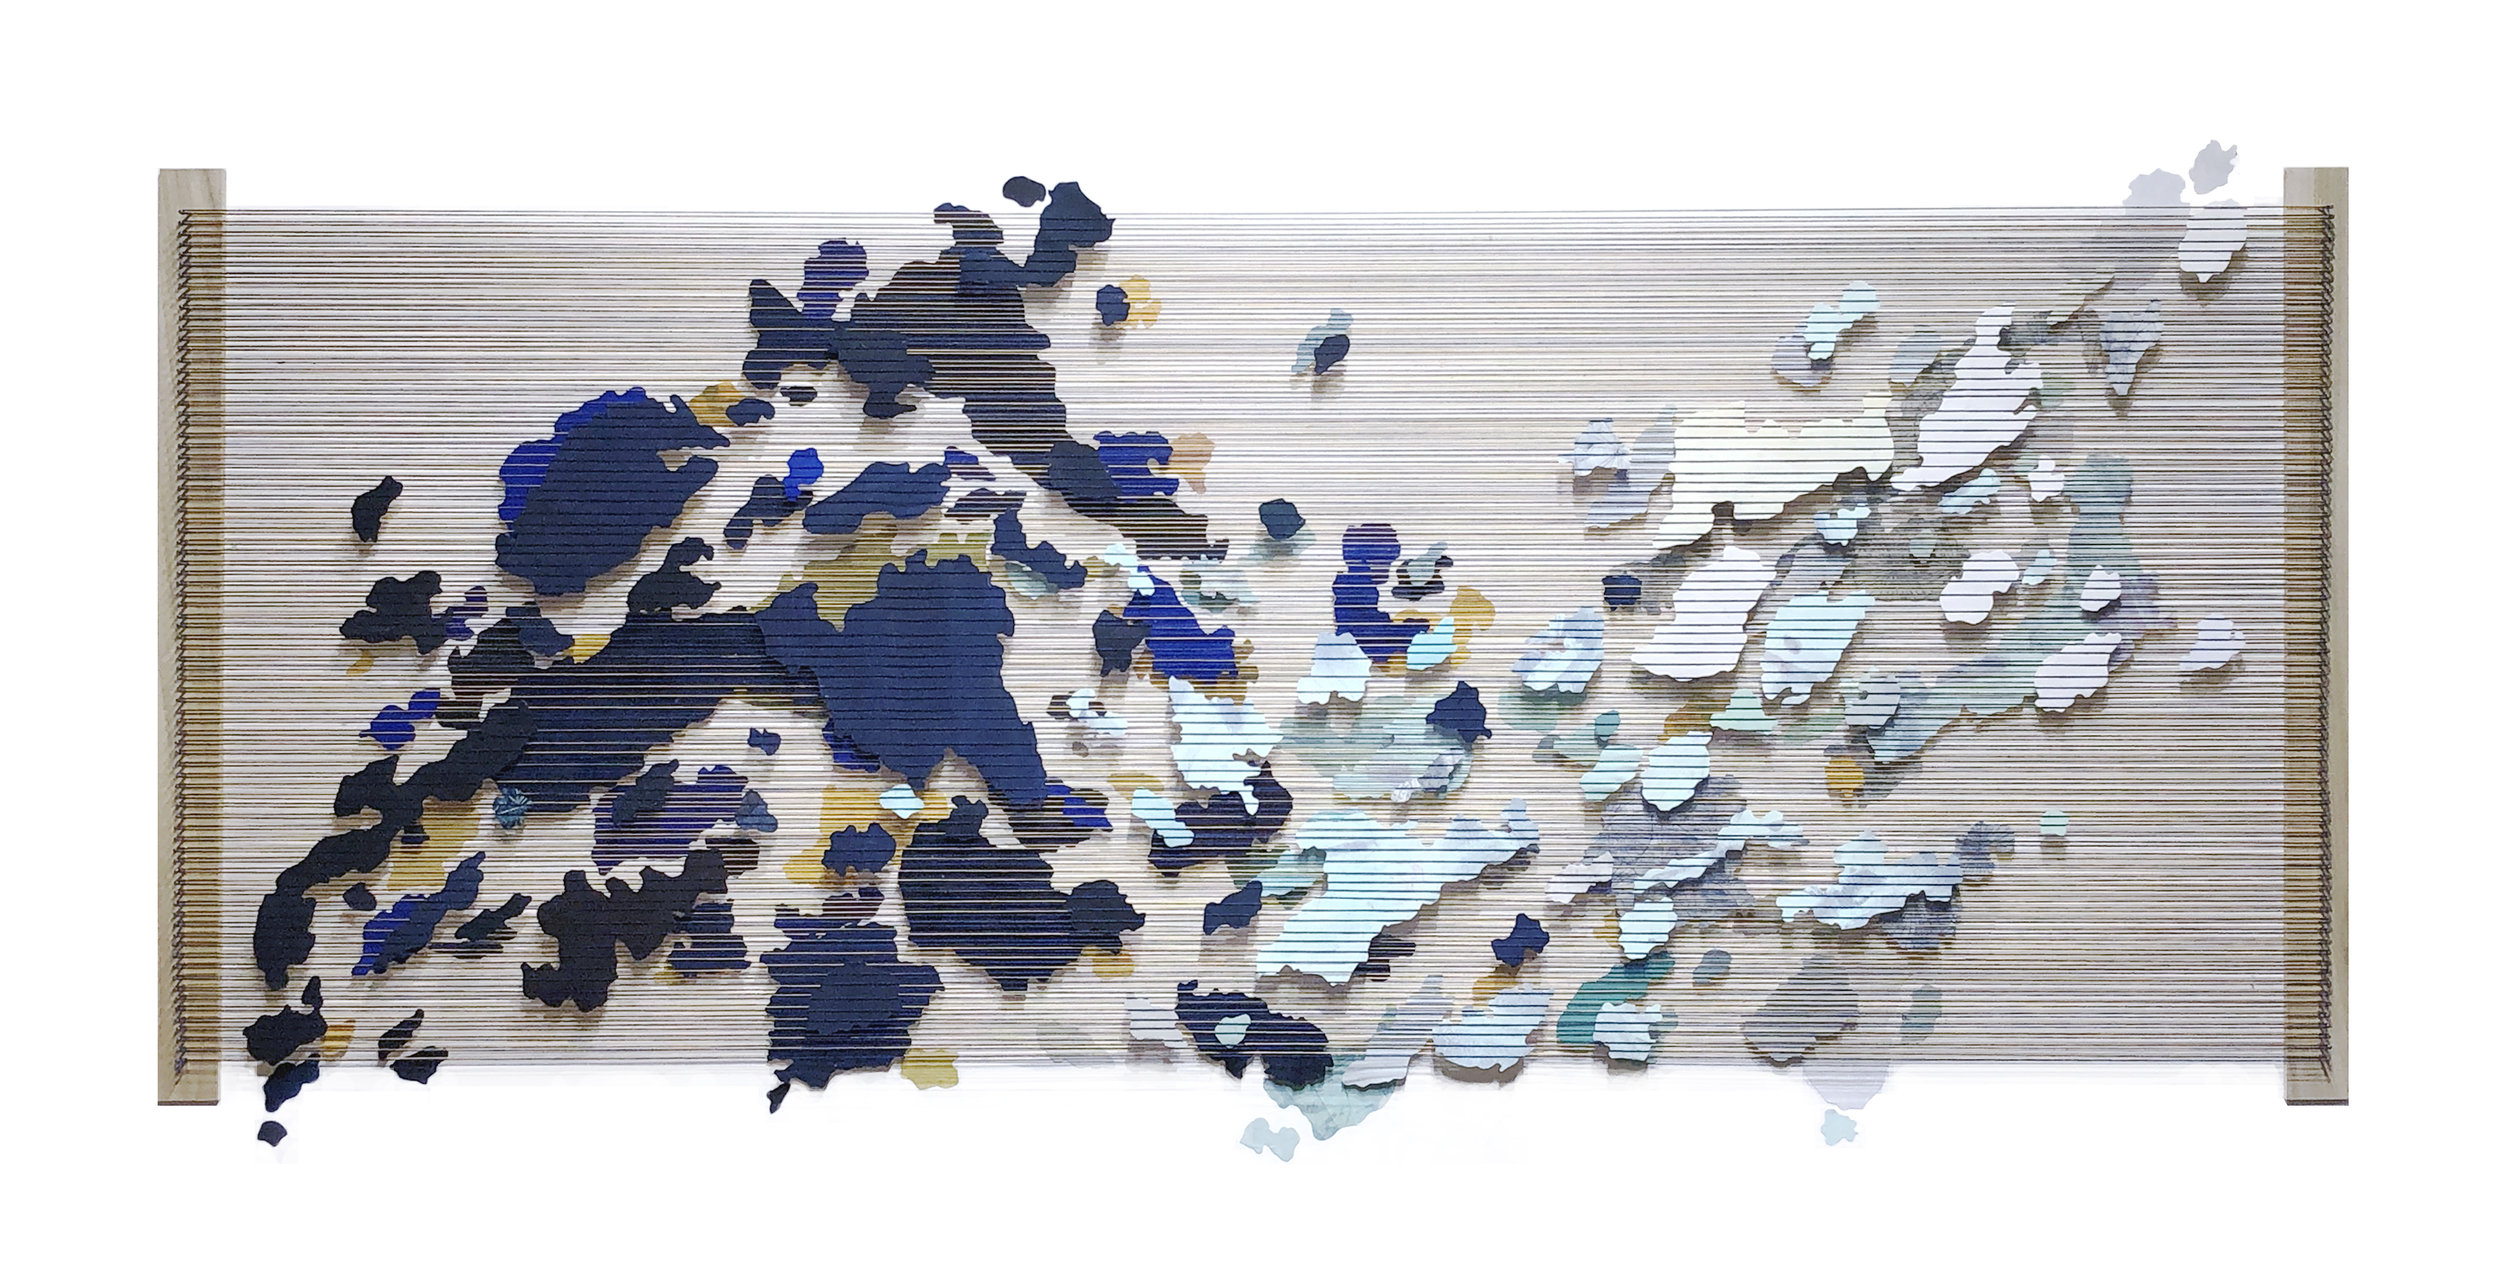 Tegan Brozyna Roberts,  Remnants VI,  2019, Painted paper, thread, nails and wood, 31 x 61 inches